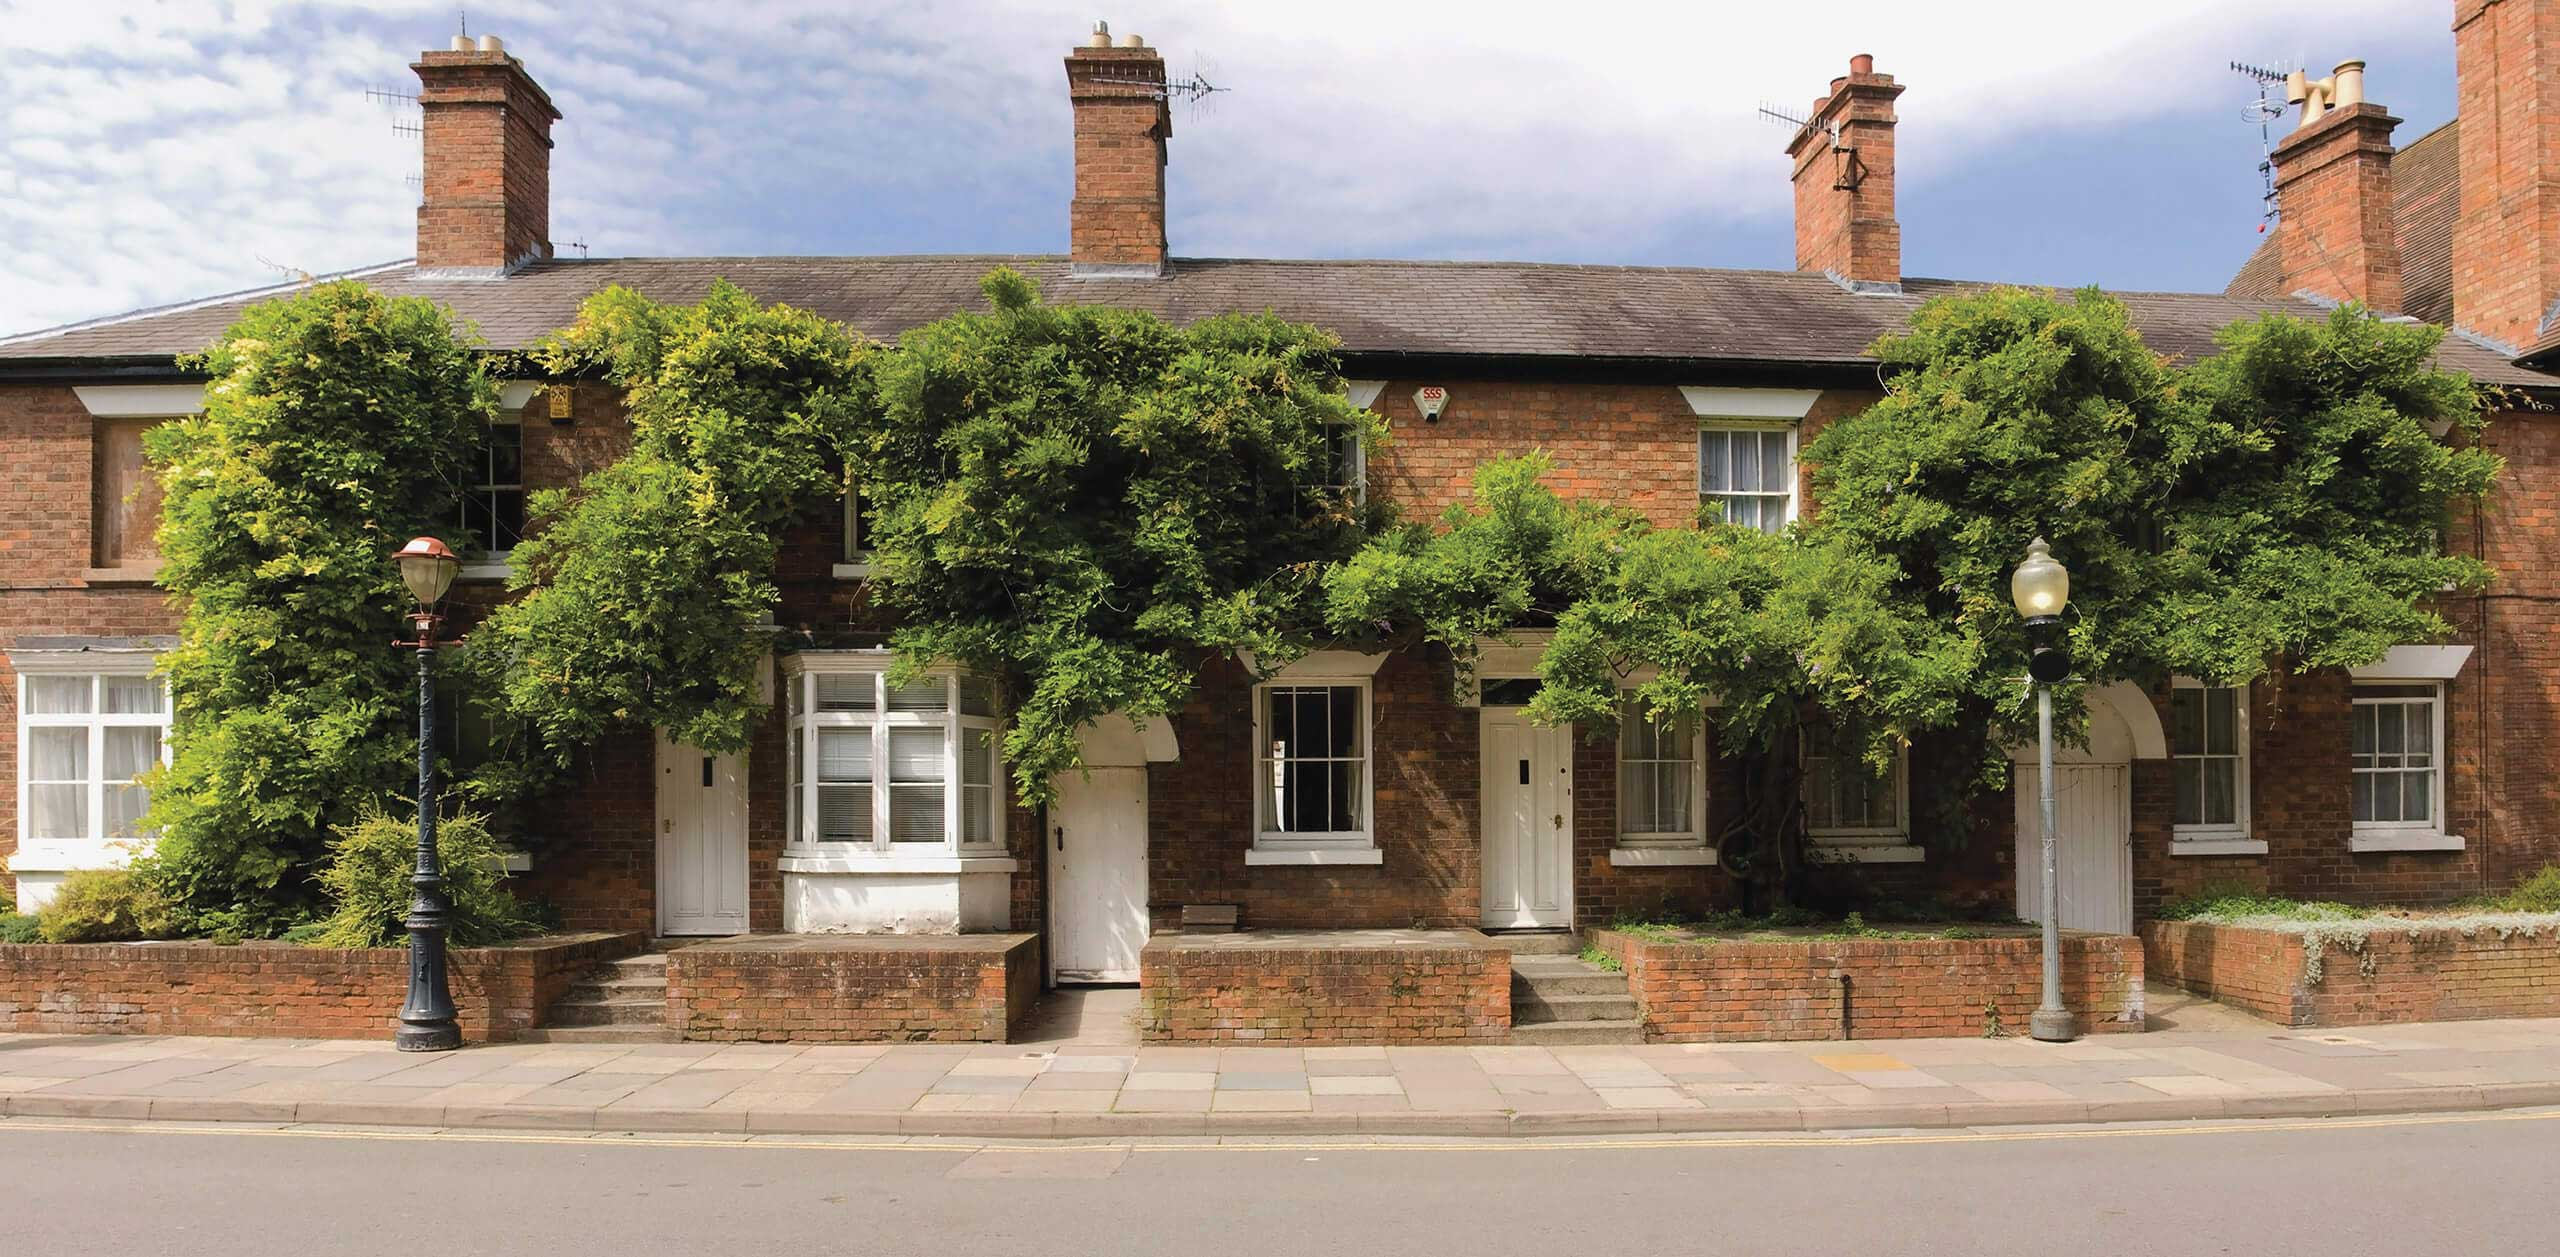 Period properties in Stratford-upon-Avon